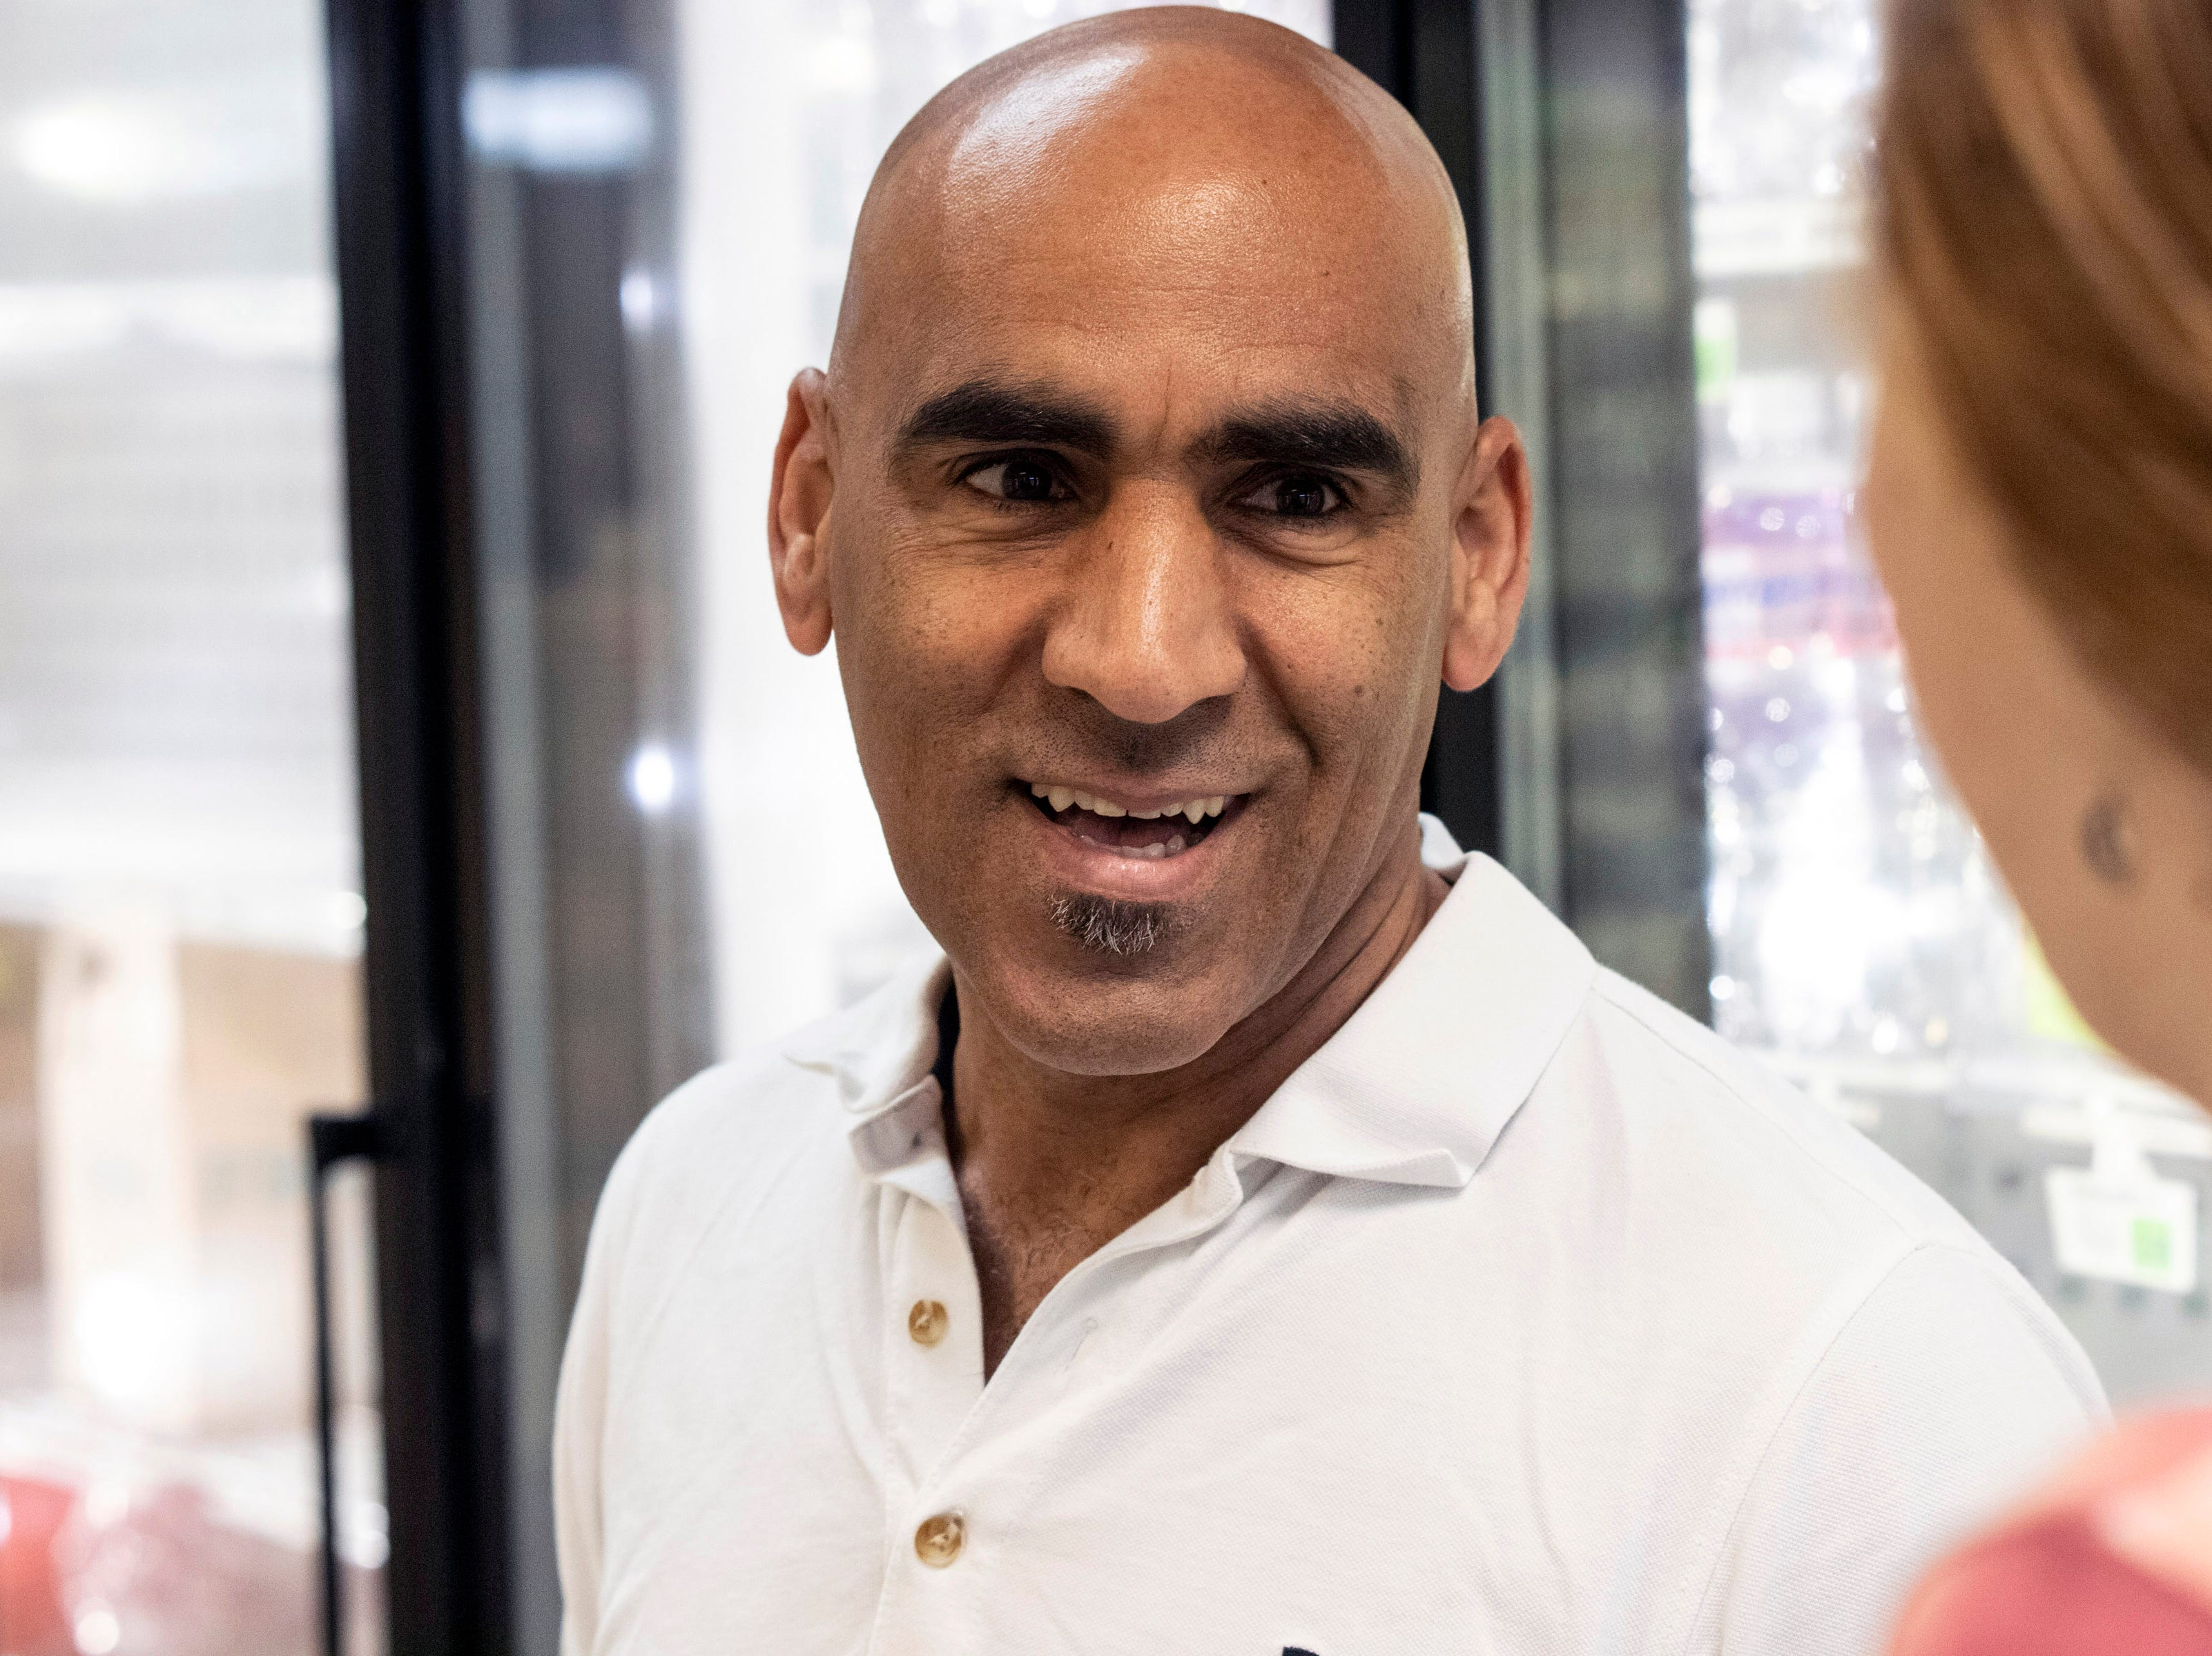 Owner Abdul Alshawi is ready to open the Superior Market & Deli at Third & Broadway after lengthy renovations to the 5,400-square-foot space in the century-old Fincastle Building. 5/10/19